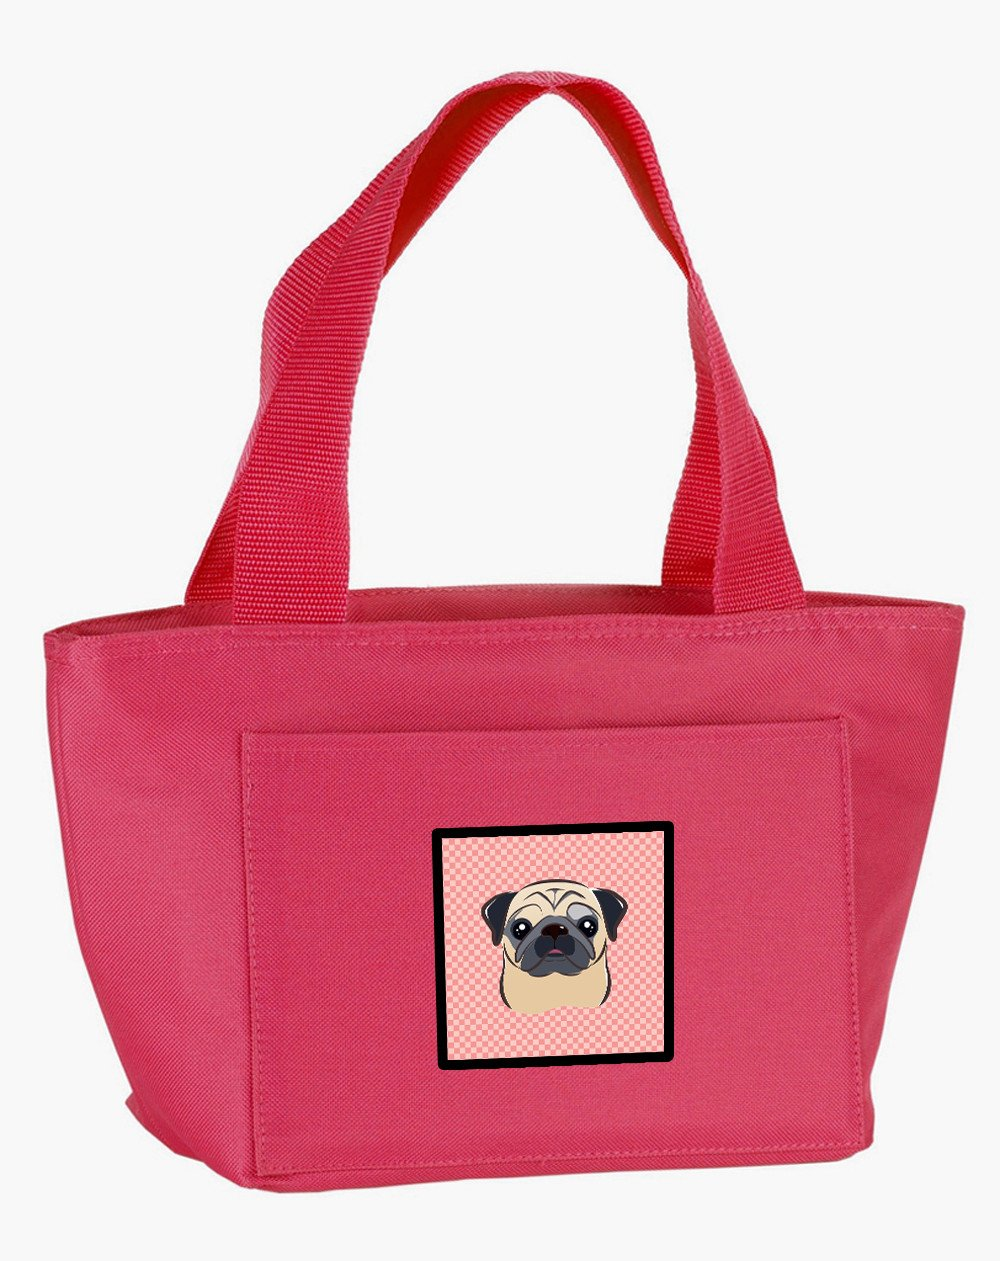 Checkerboard Pink Fawn Pug Lunch Bag BB1262PK-8808 by Caroline's Treasures